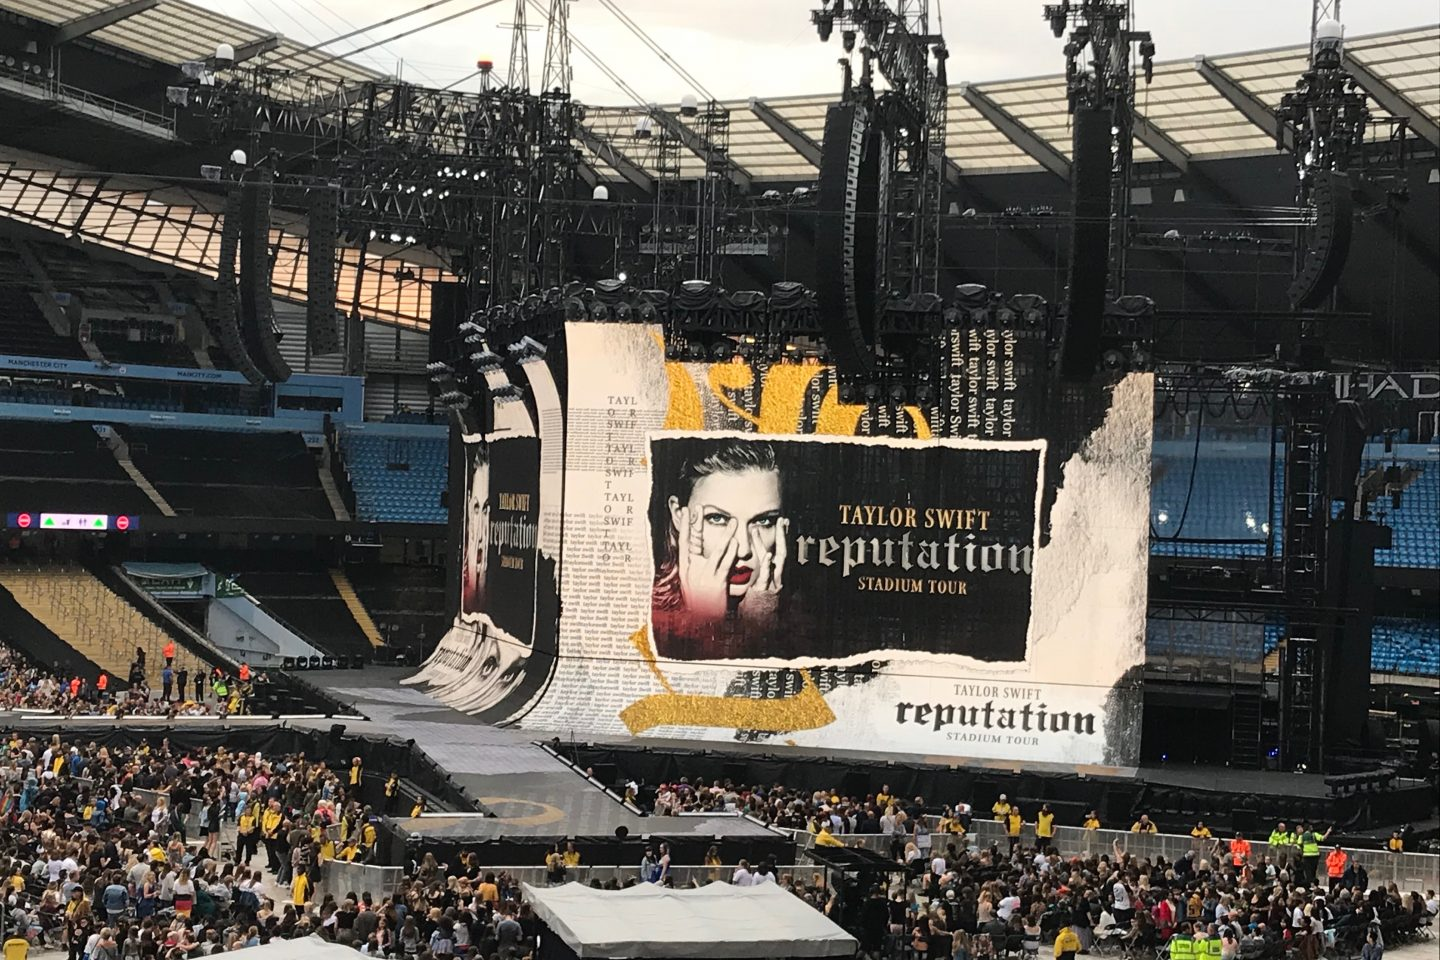 A photo of the stage at the Etihad stadium and the Reputation stadium tour logo on the screen